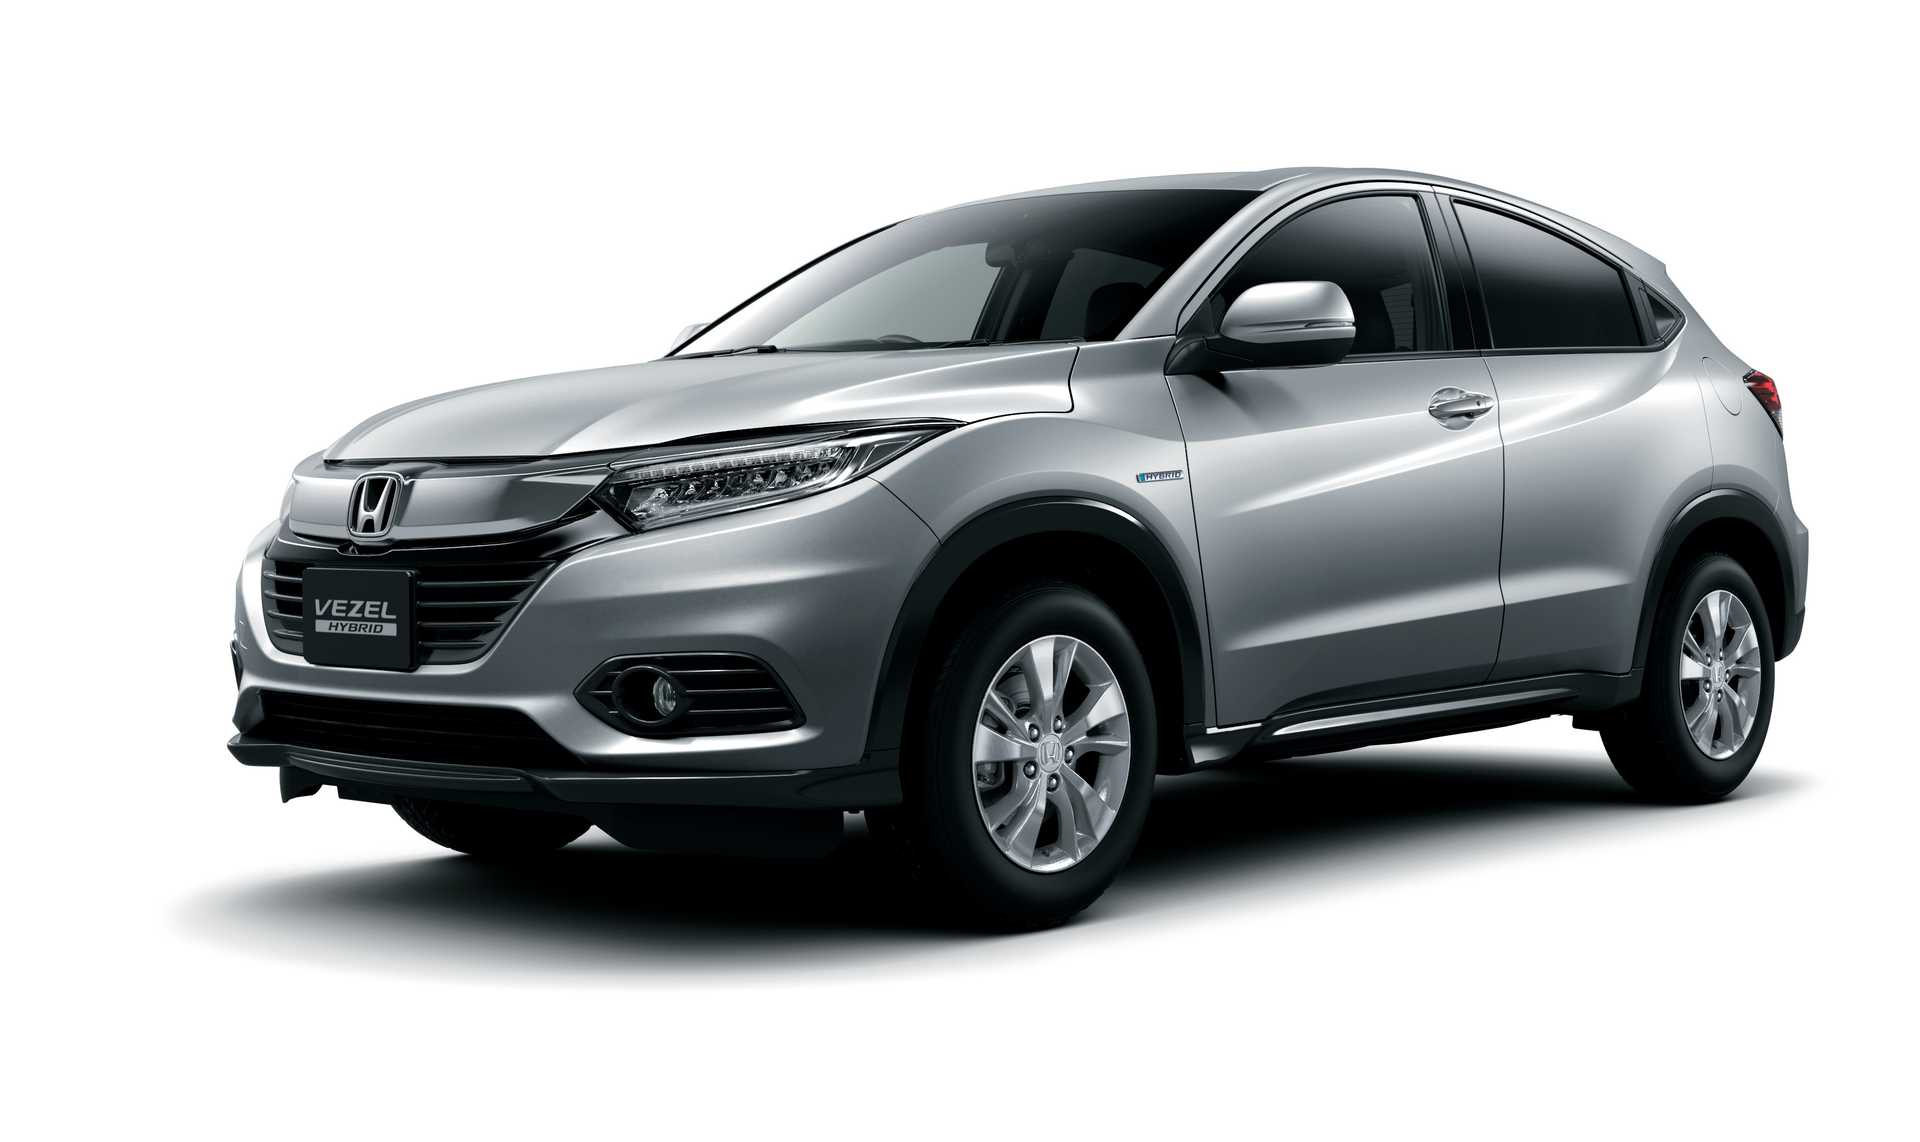 53 New 2019 Honda Vezel Price And Review